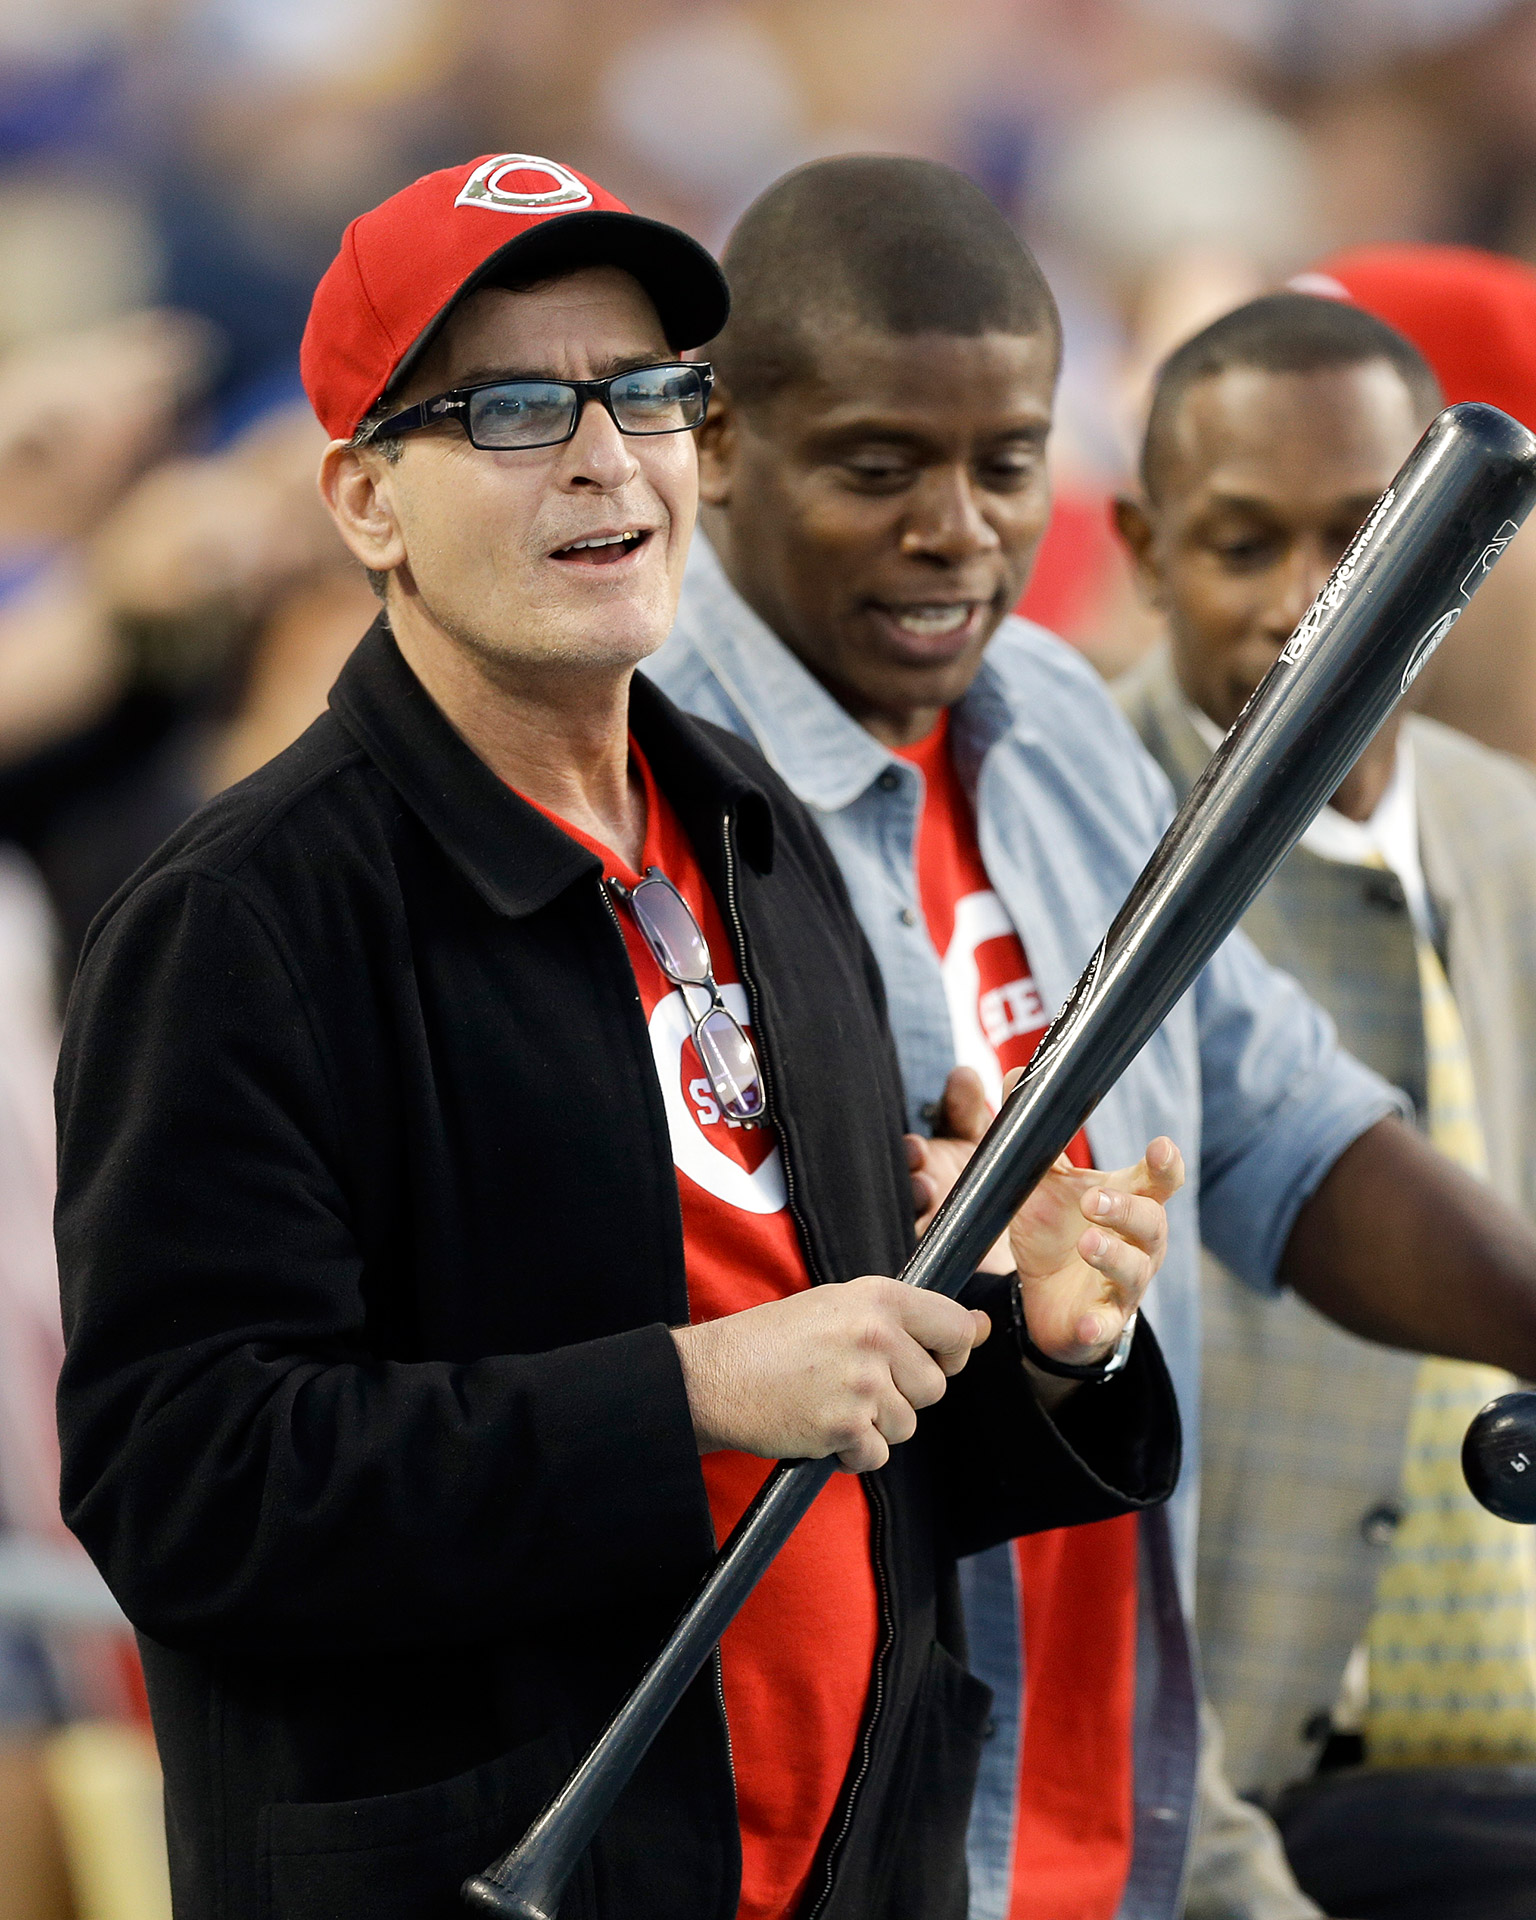 Timeline furthermore Charlie Sheen Celebrity Baseball Fans further Wild For You as well 73348194 together with 15371243. on one game wild card playoff